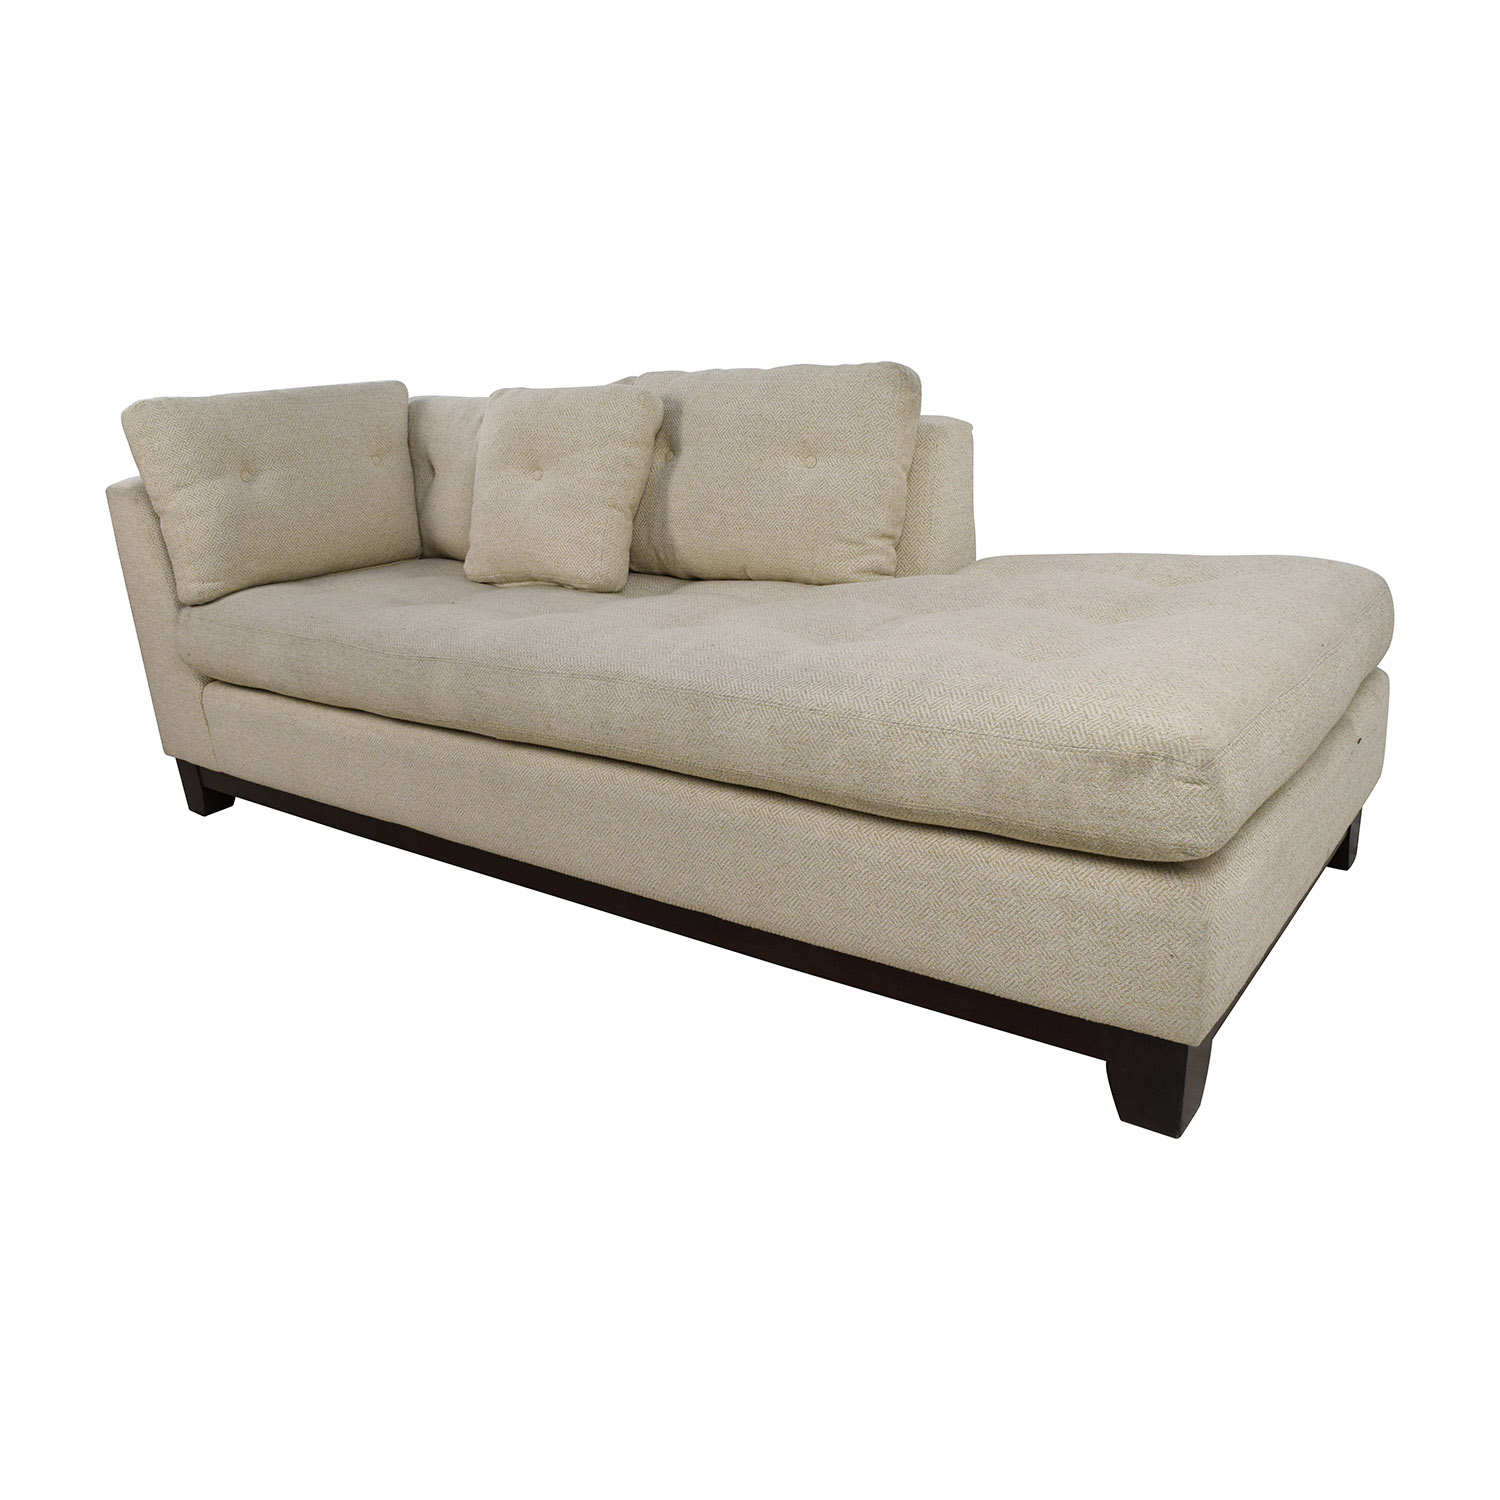 79 off freestyle freestyle tufted natural fabric sofa for Chaise and sofa